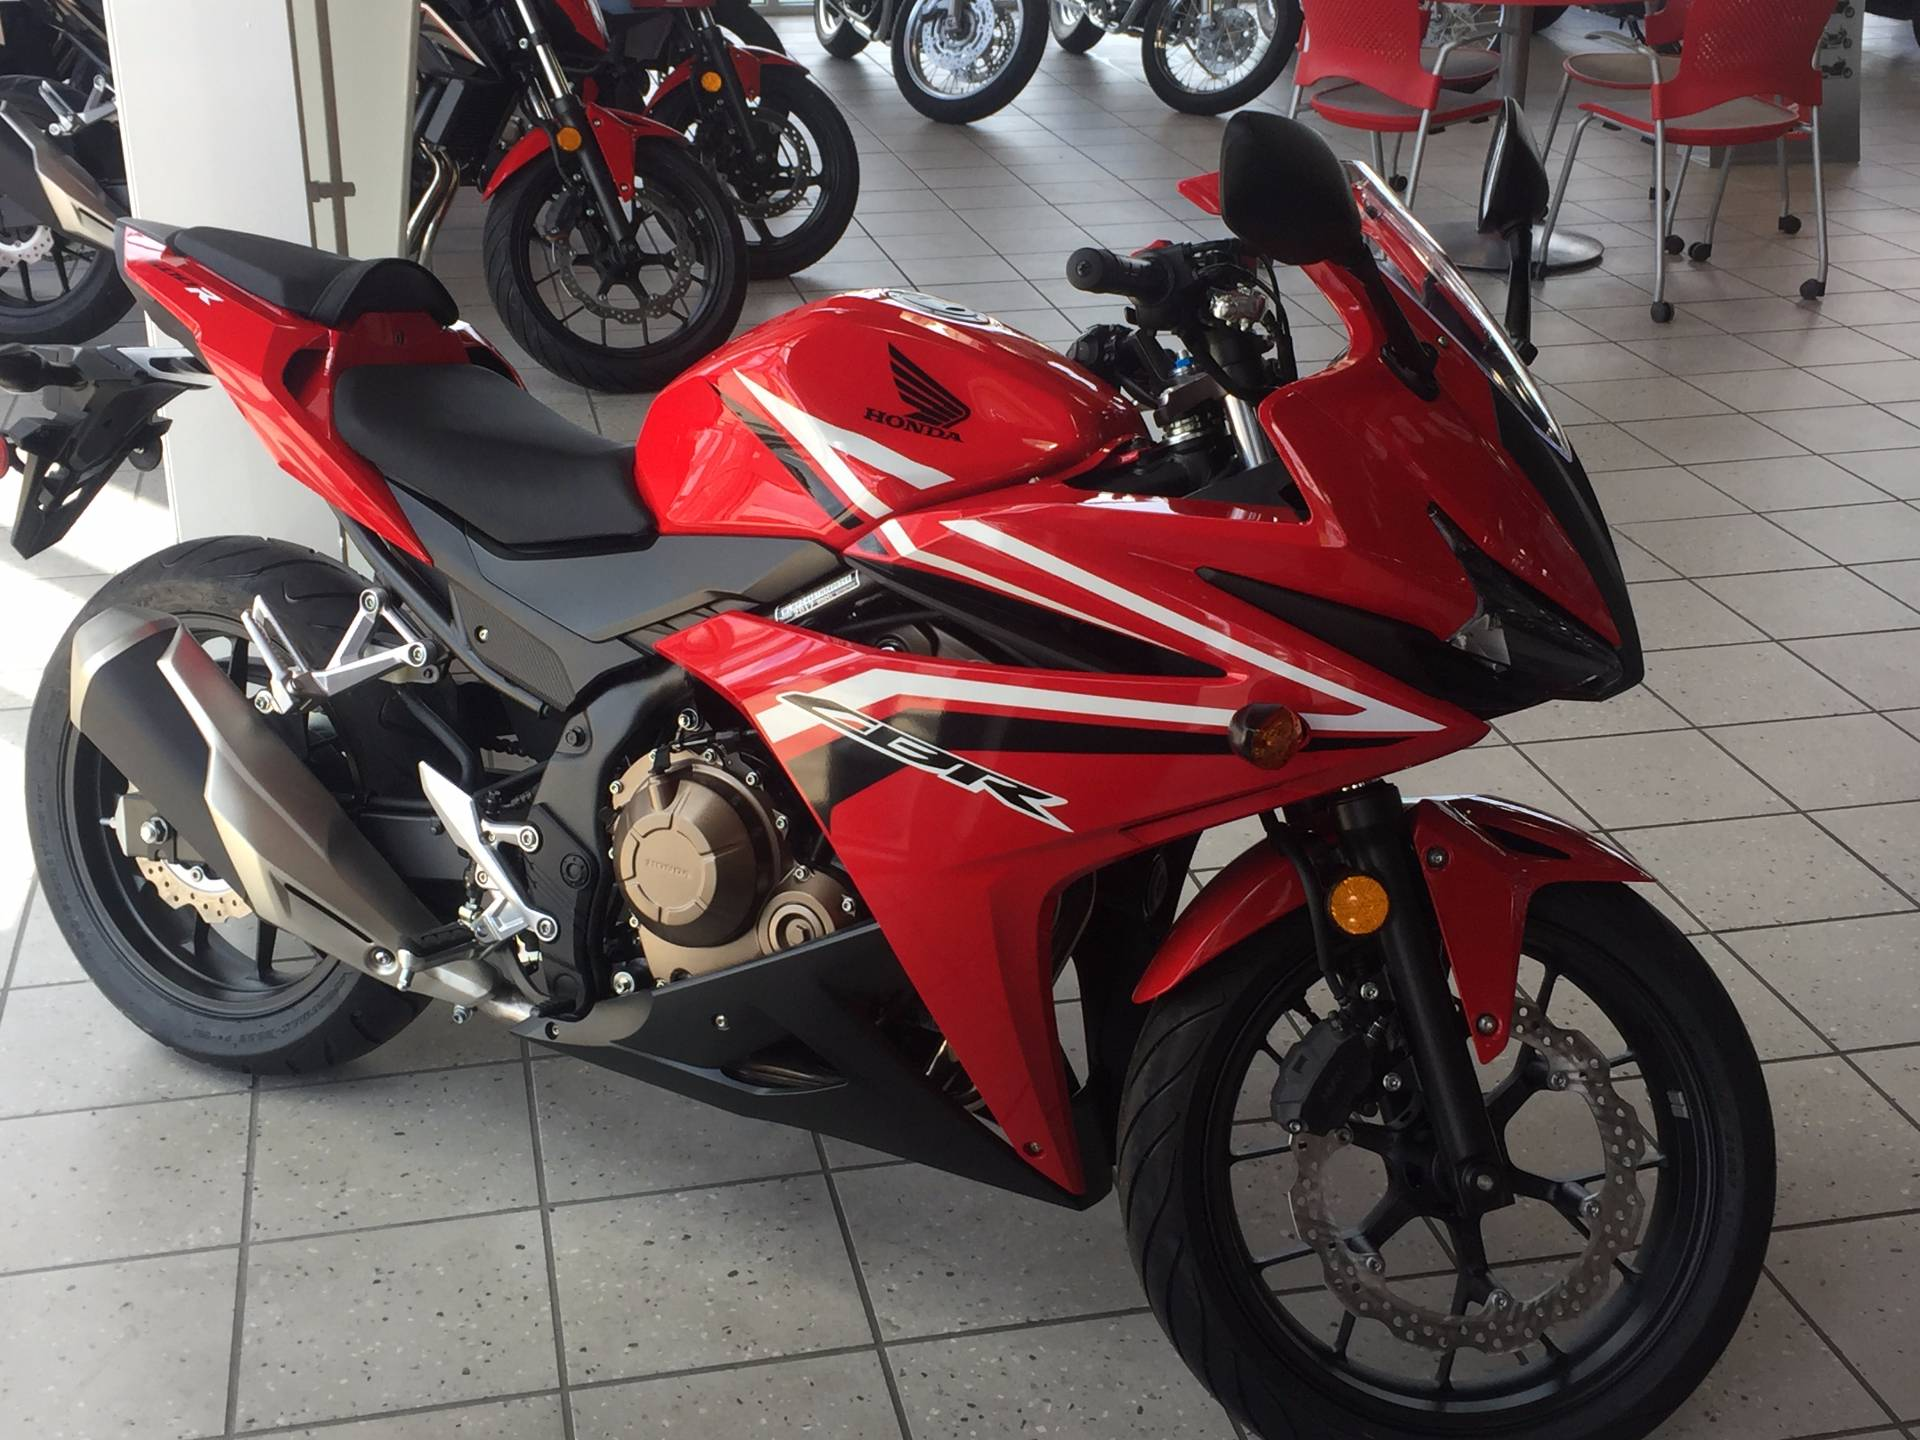 New 2017 Honda CBR500R Motorcycles in Troy OH